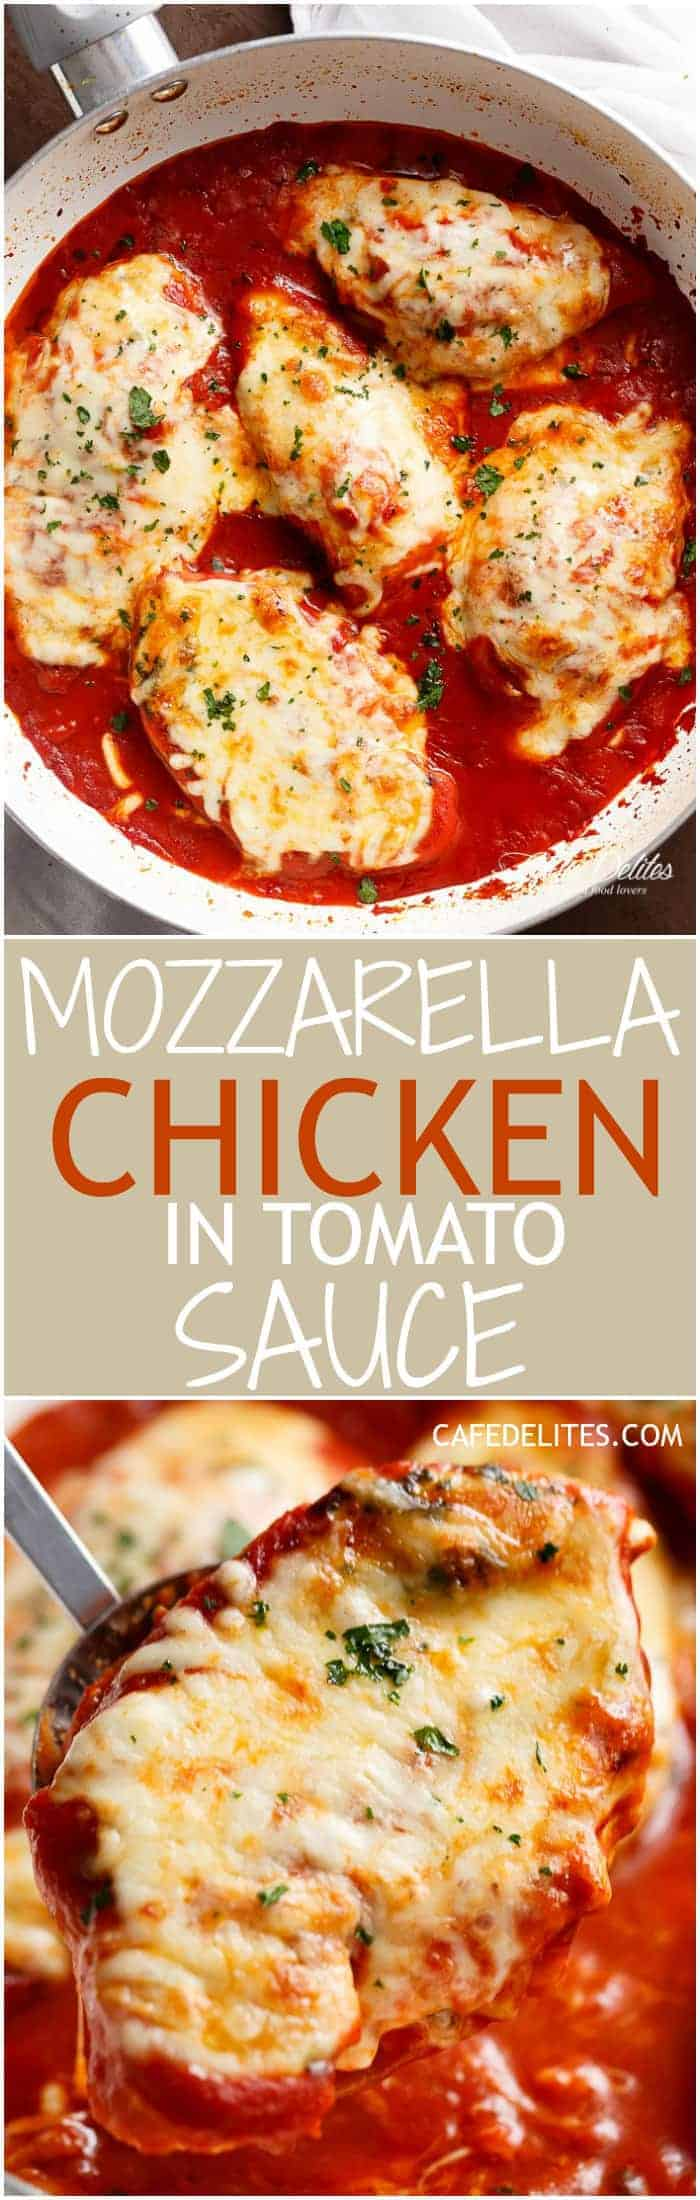 A quick and easy Mozzarella Chicken In Tomato Sauce made in the one skillet in under 15 min! A restaurant quality dinner full of flavour in half the time. | https://cafedelites.com